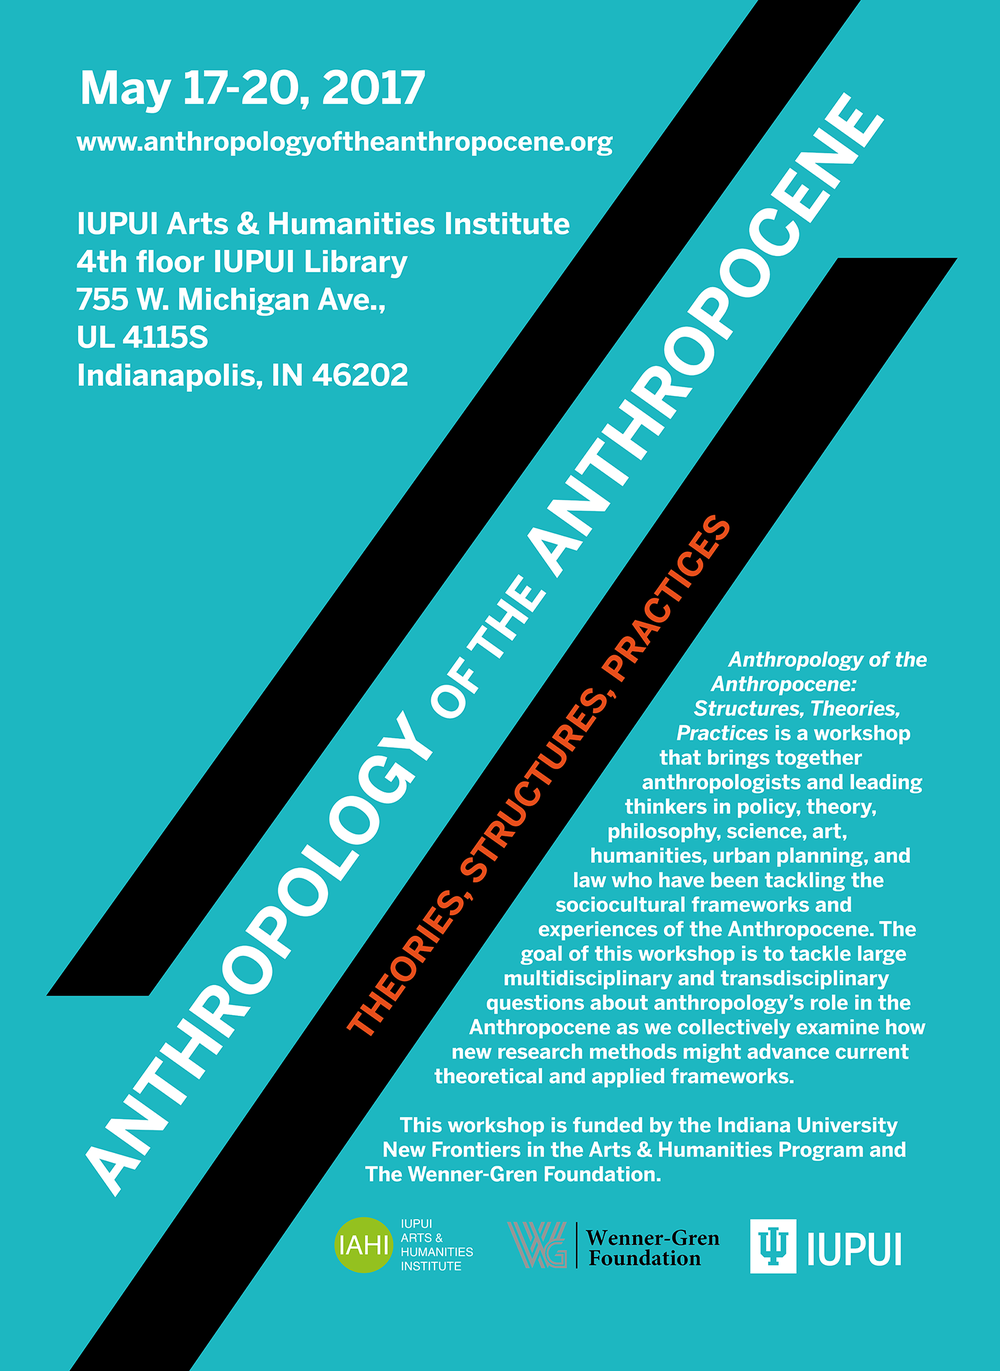 Anthropology of the Anthropocene Conference